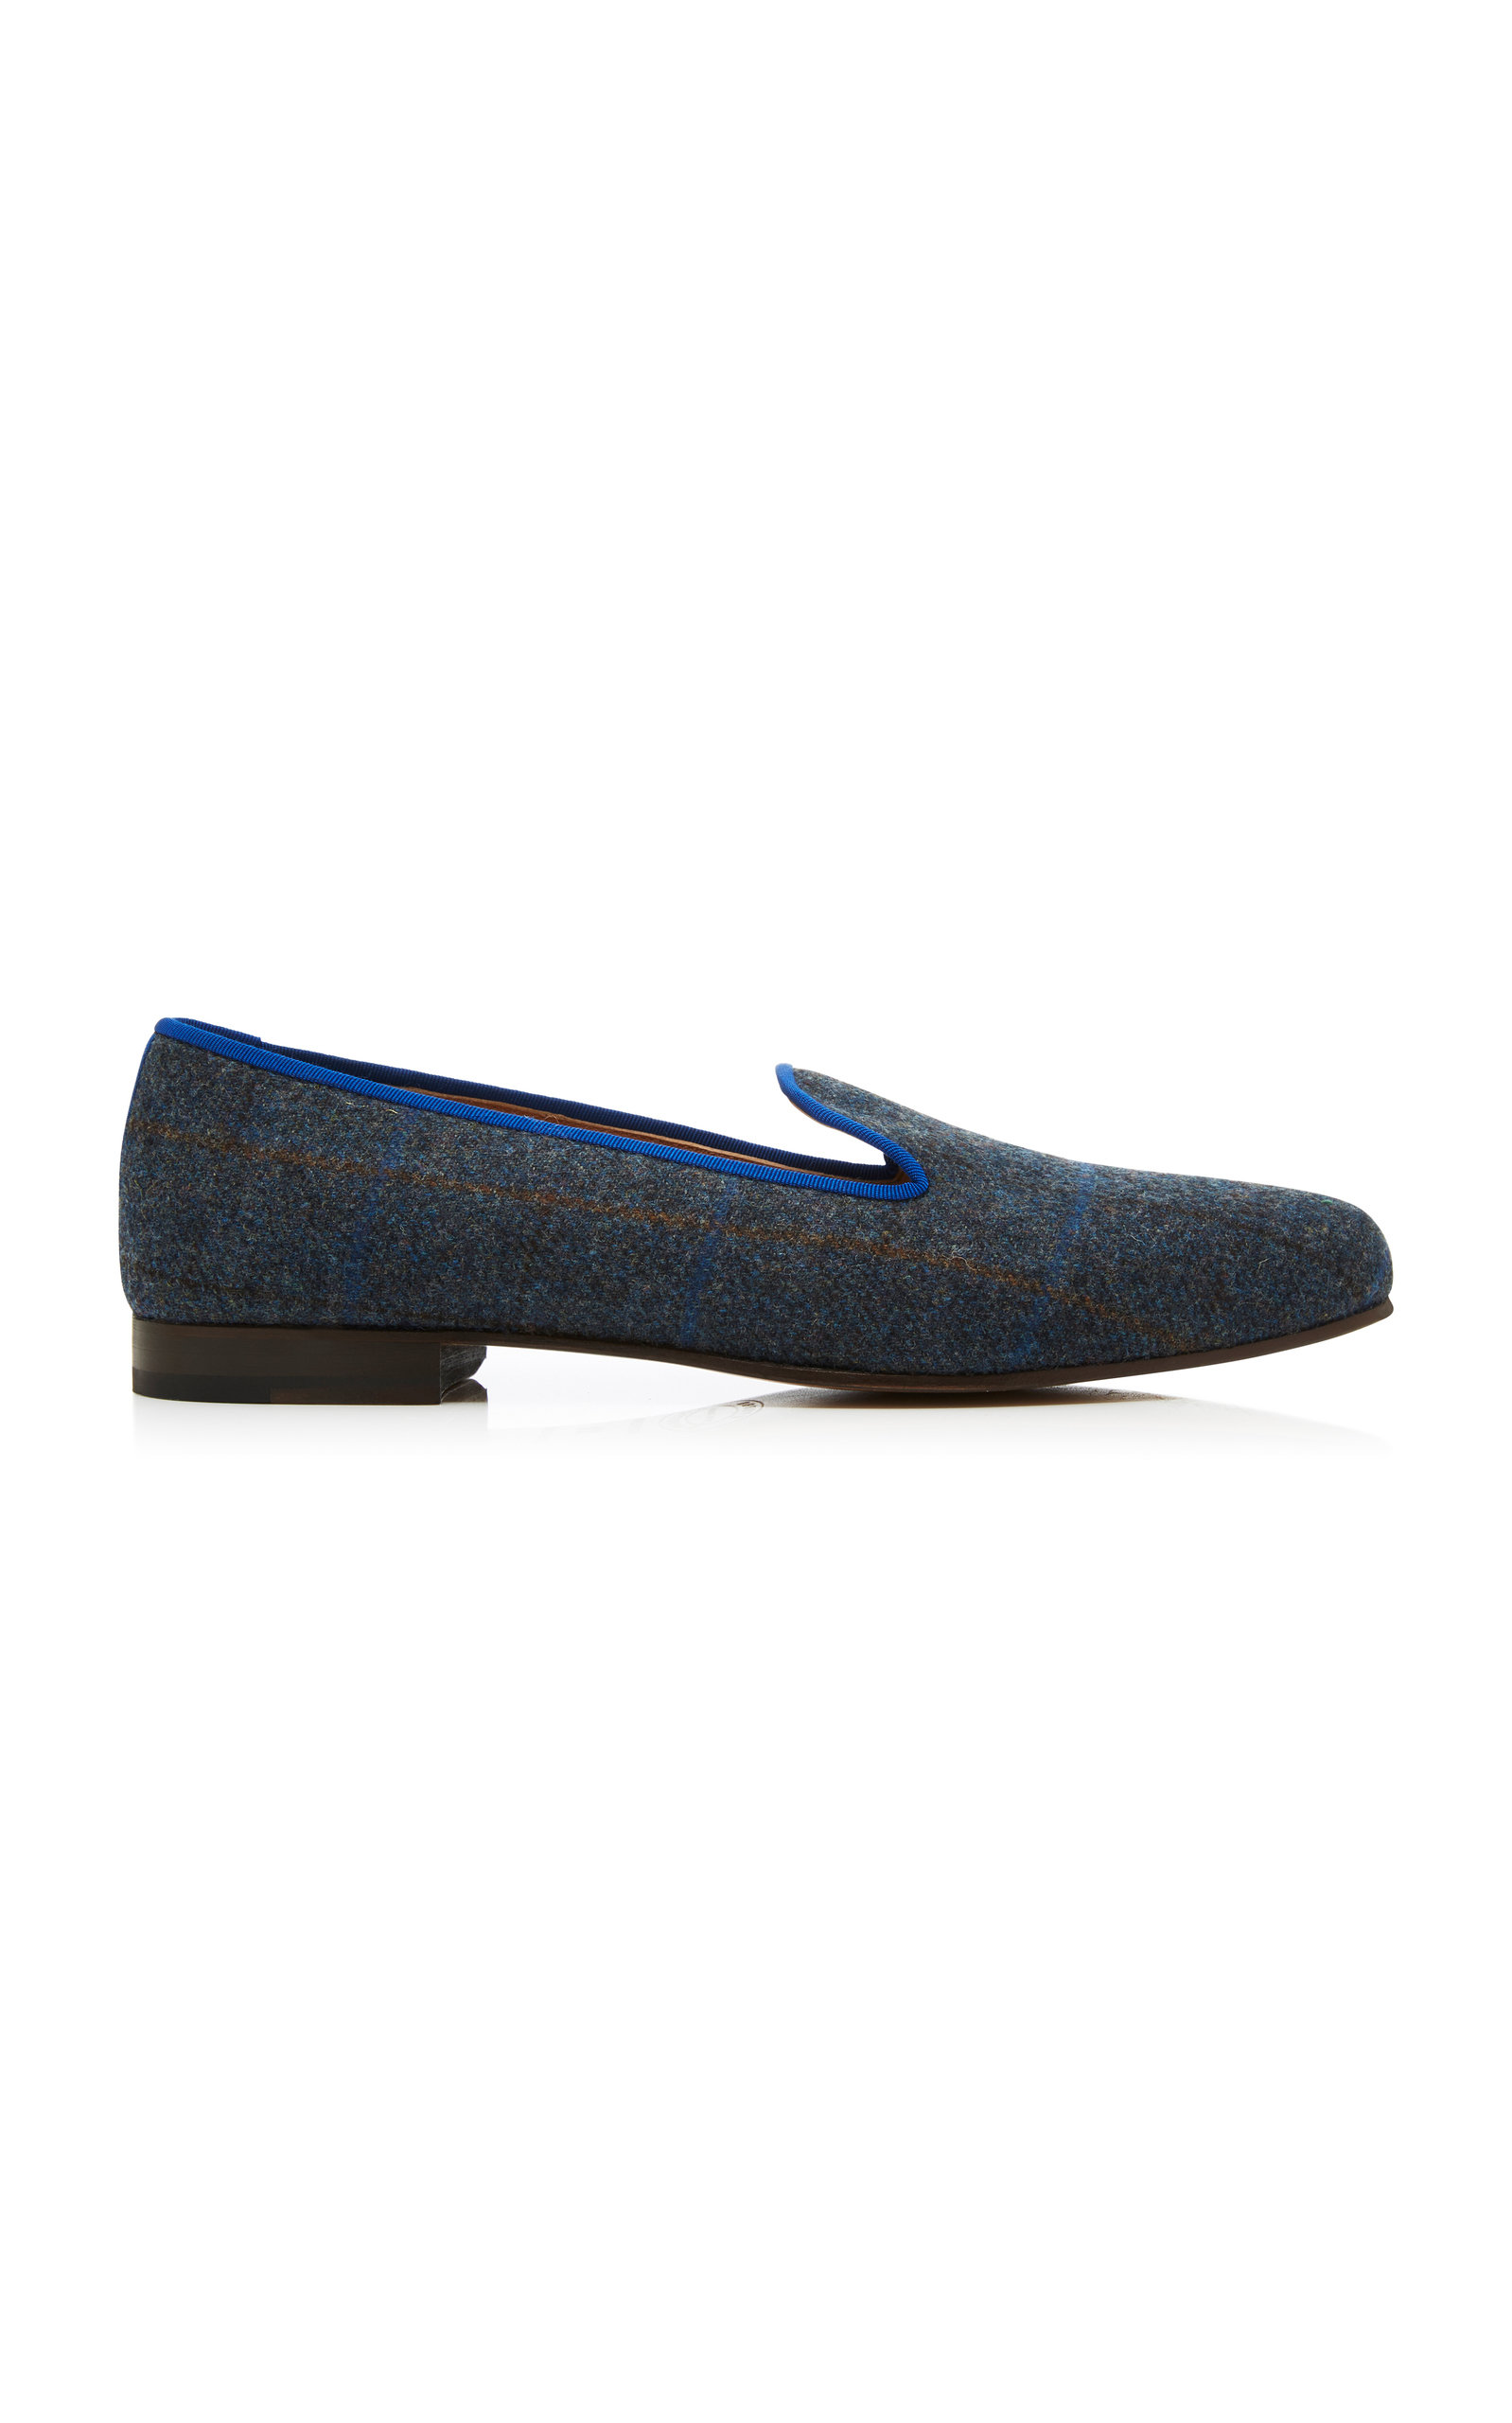 STUBBS & WOOTTON M'O Exclusive Plaid Tweed Slippers